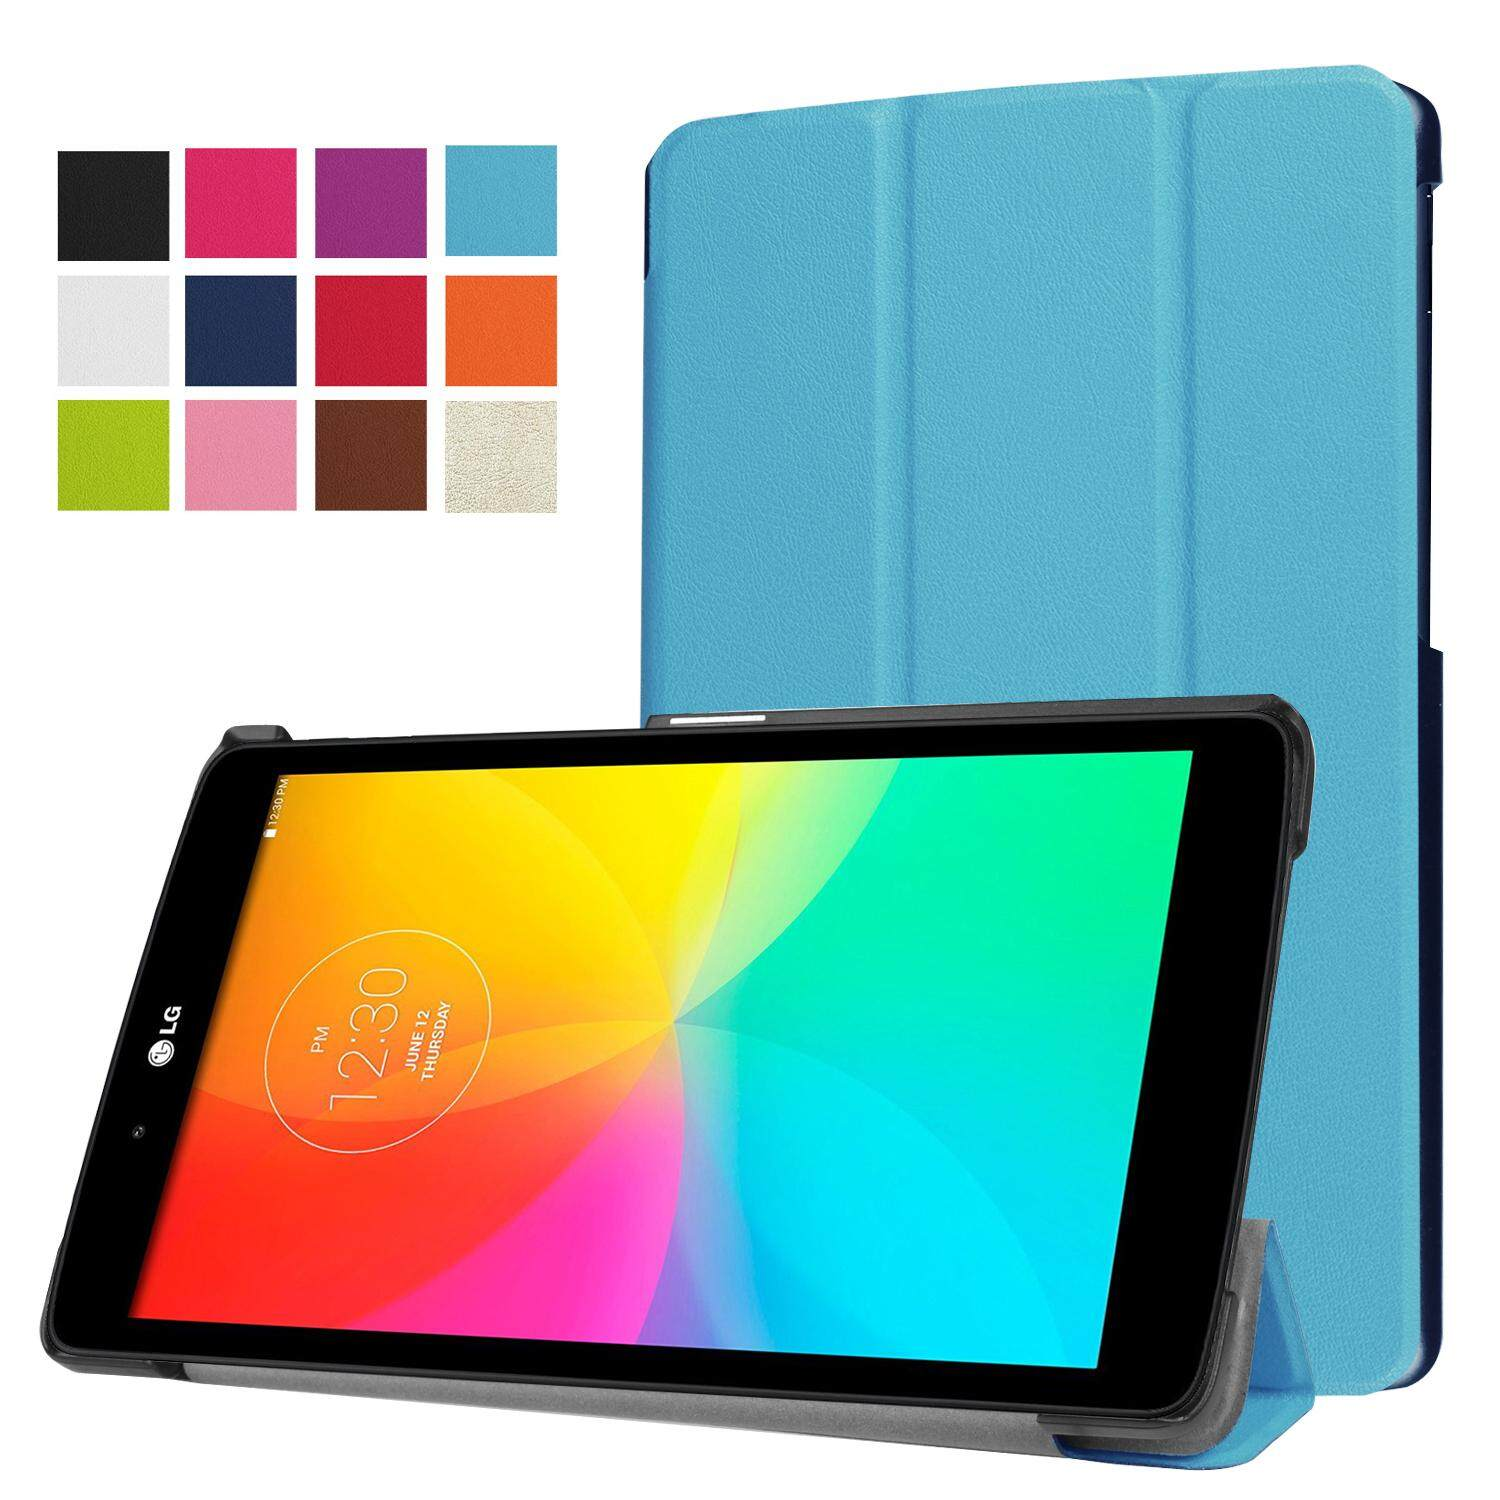 Galaxy Tab A 101 2016 Case Saturcase Beautiful Pattern Pu Leather 2in1 Hybrid Armor Samsung 70 T285 T585 T580 Sm Source Wallet Stand Flip Cover